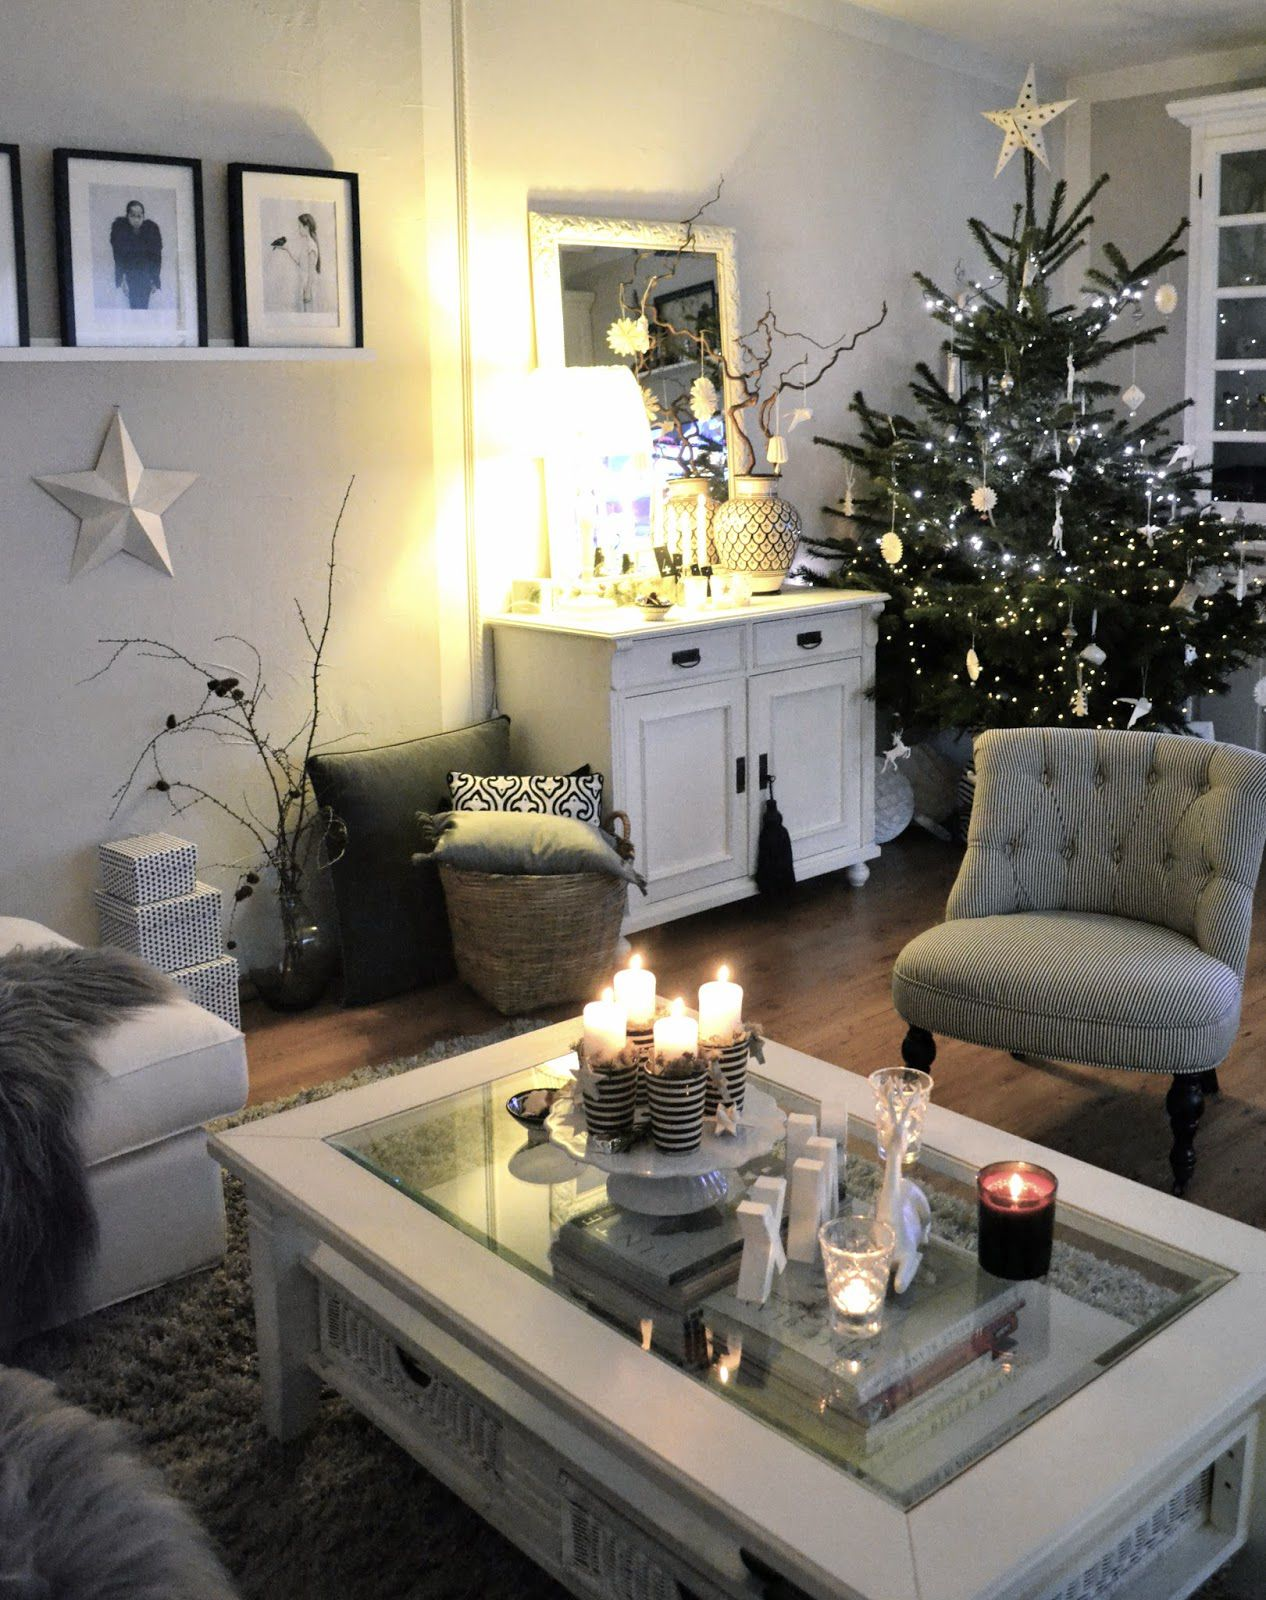 weihnachtsbaum ideen sharelookhomes christmas weihn. Black Bedroom Furniture Sets. Home Design Ideas